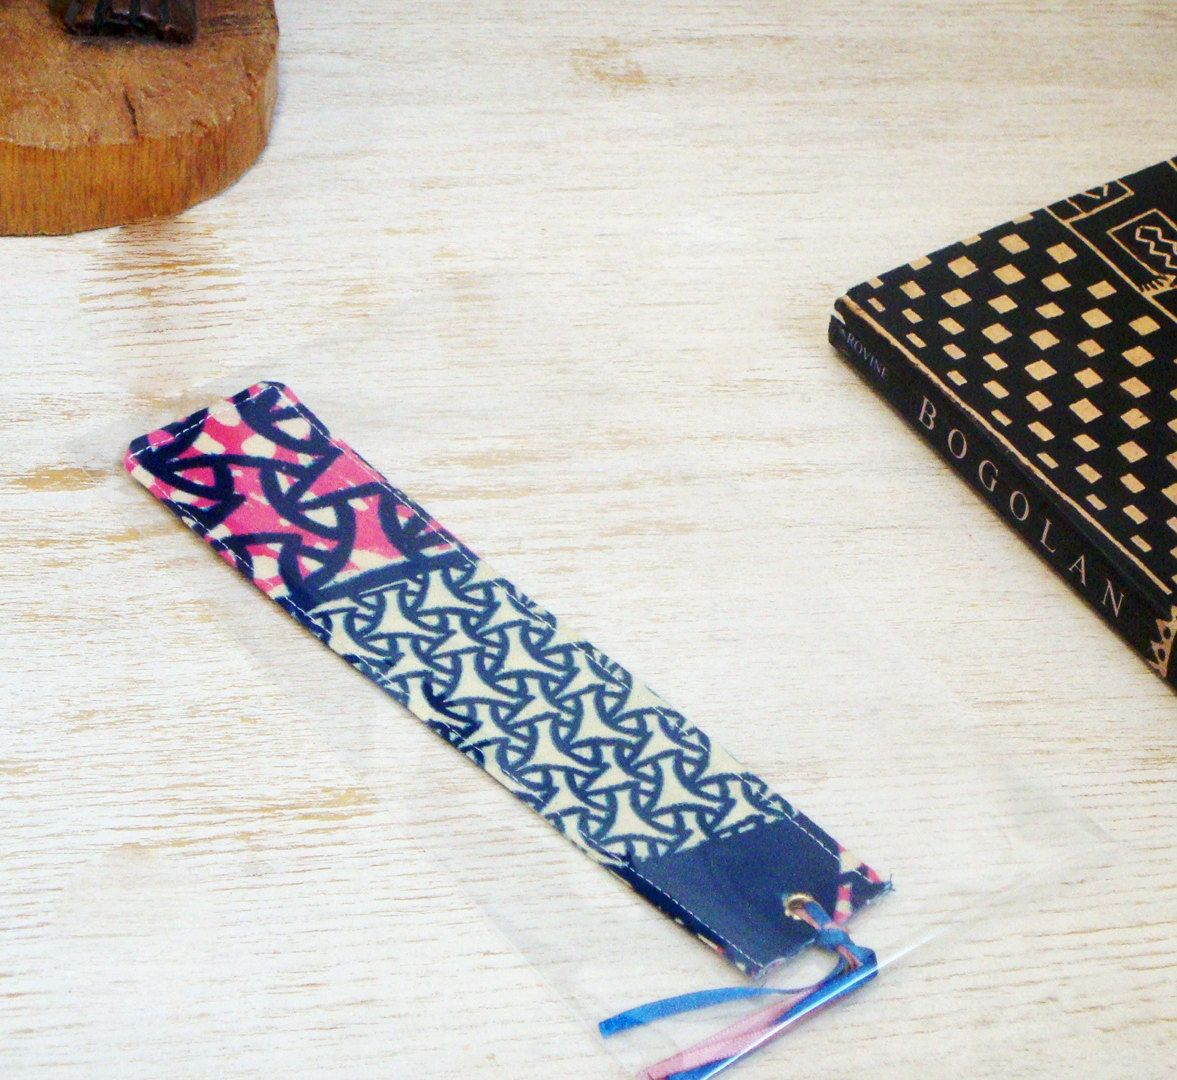 New to TamiahDesigns on Etsy: Handmade Fabric Soft Bookmark Satin Ribbon African Print Gift Book Lovers Fun Original Authentic Coworker Birthday Pink Blue (6.99 GBP)